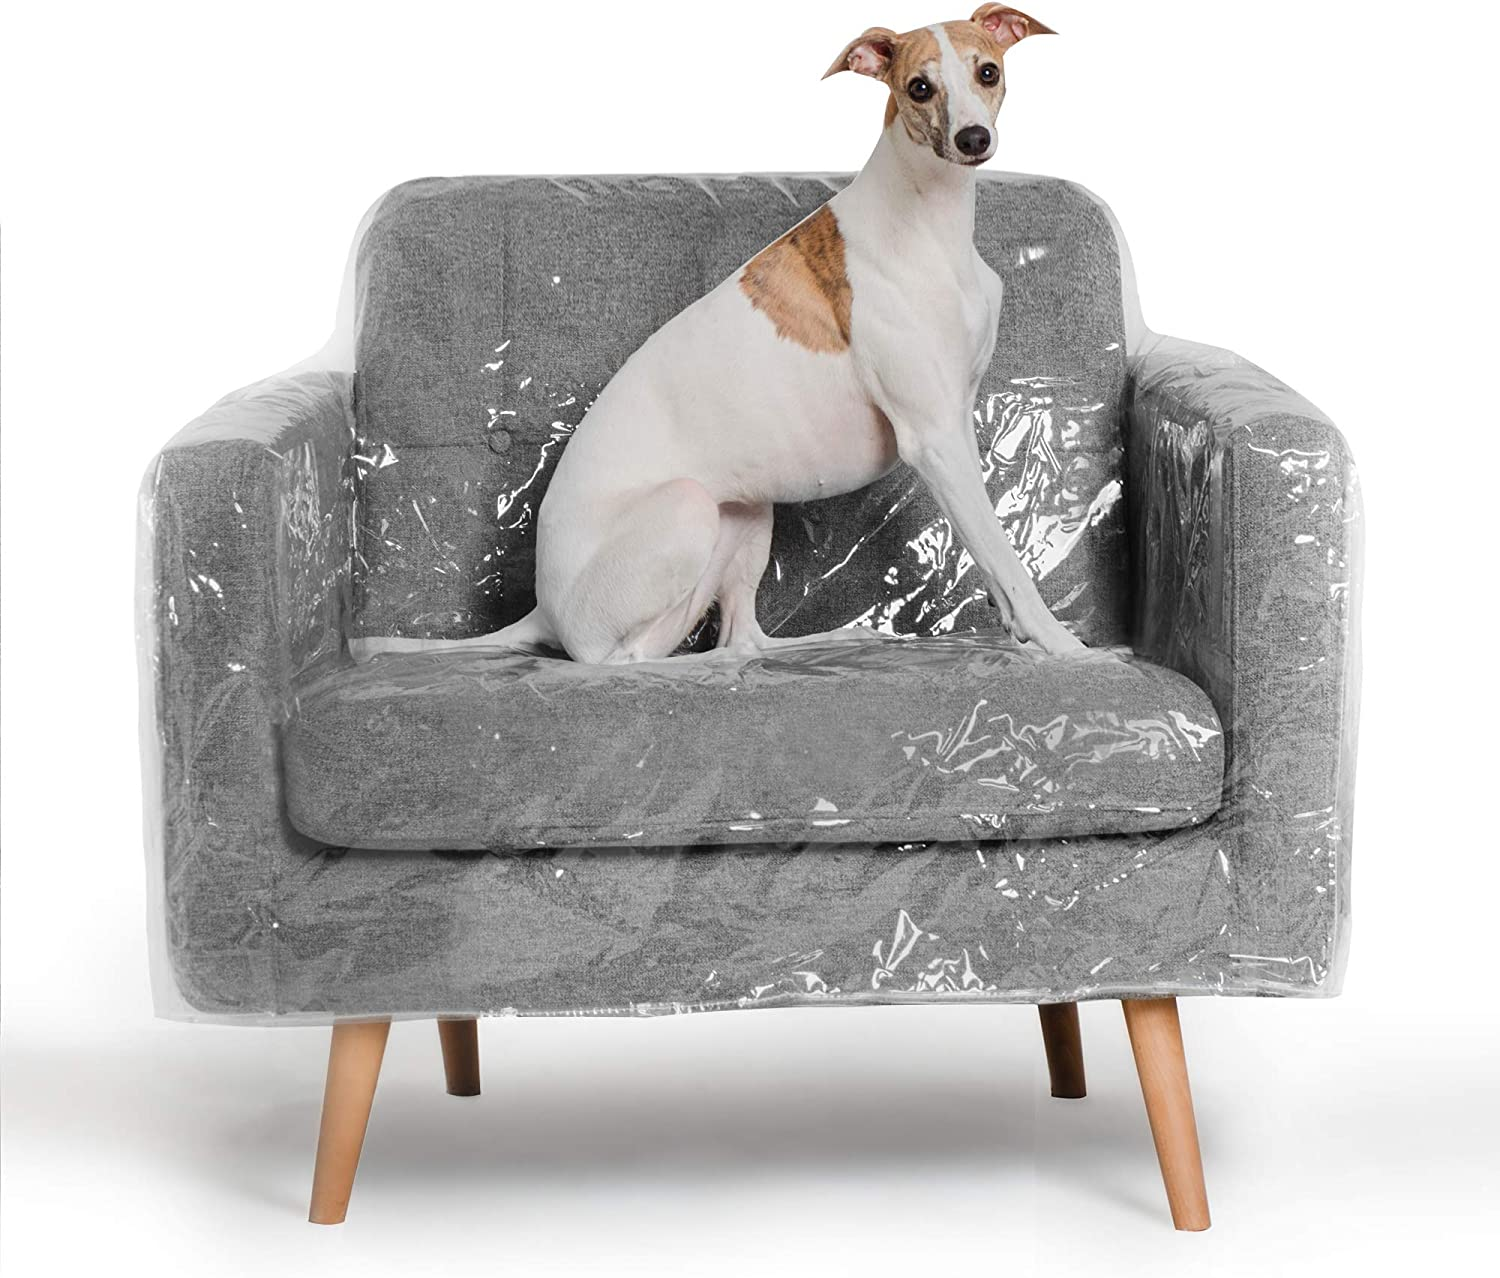 Better Than Plastic Slipcover, Vinyl Armchair Protector - 36' Waterproof Pet Furniture Covers for Cats & Dogs - Scratch & Stain - Clear Leather Armchair Protective Slip Bag (36 W x 40 D 42 BH x 25 FH)